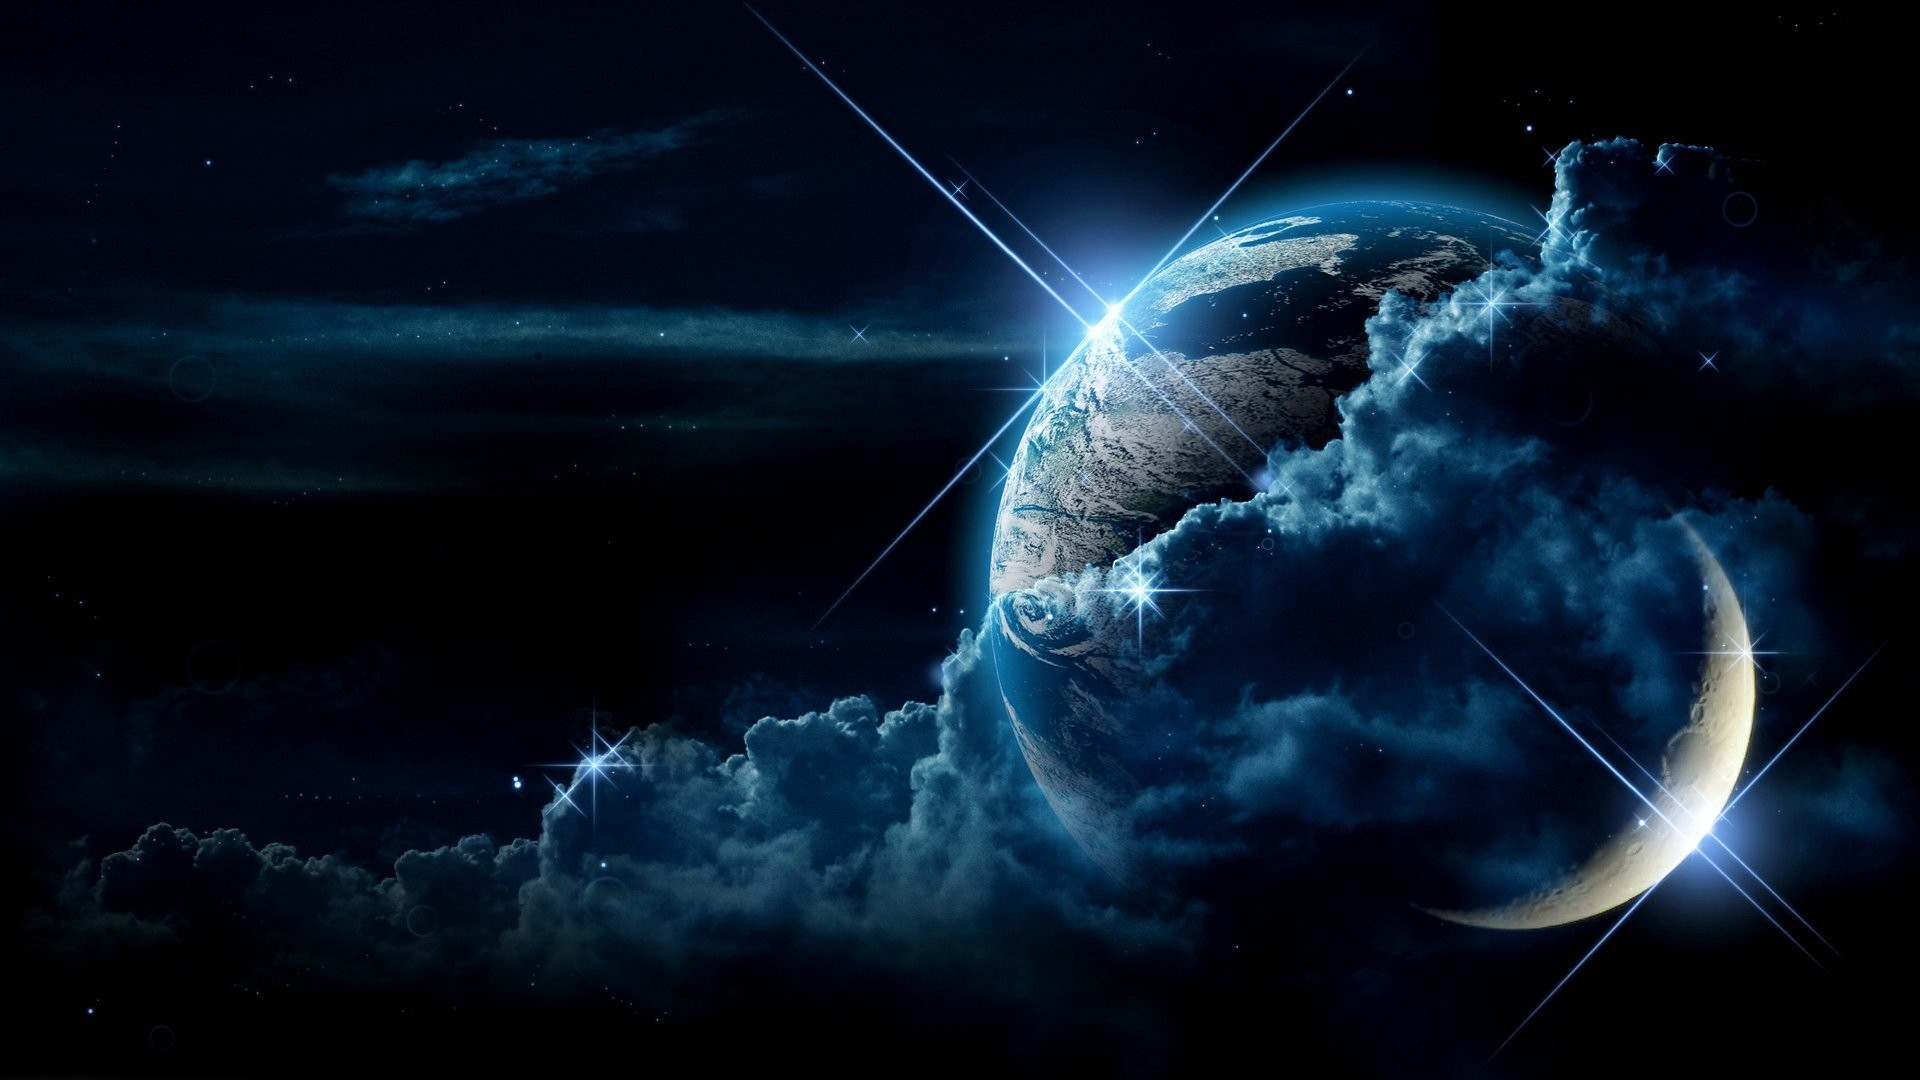 1920x1080 44 HD Real Space wallpapers 1080p ·① Download free beautiful